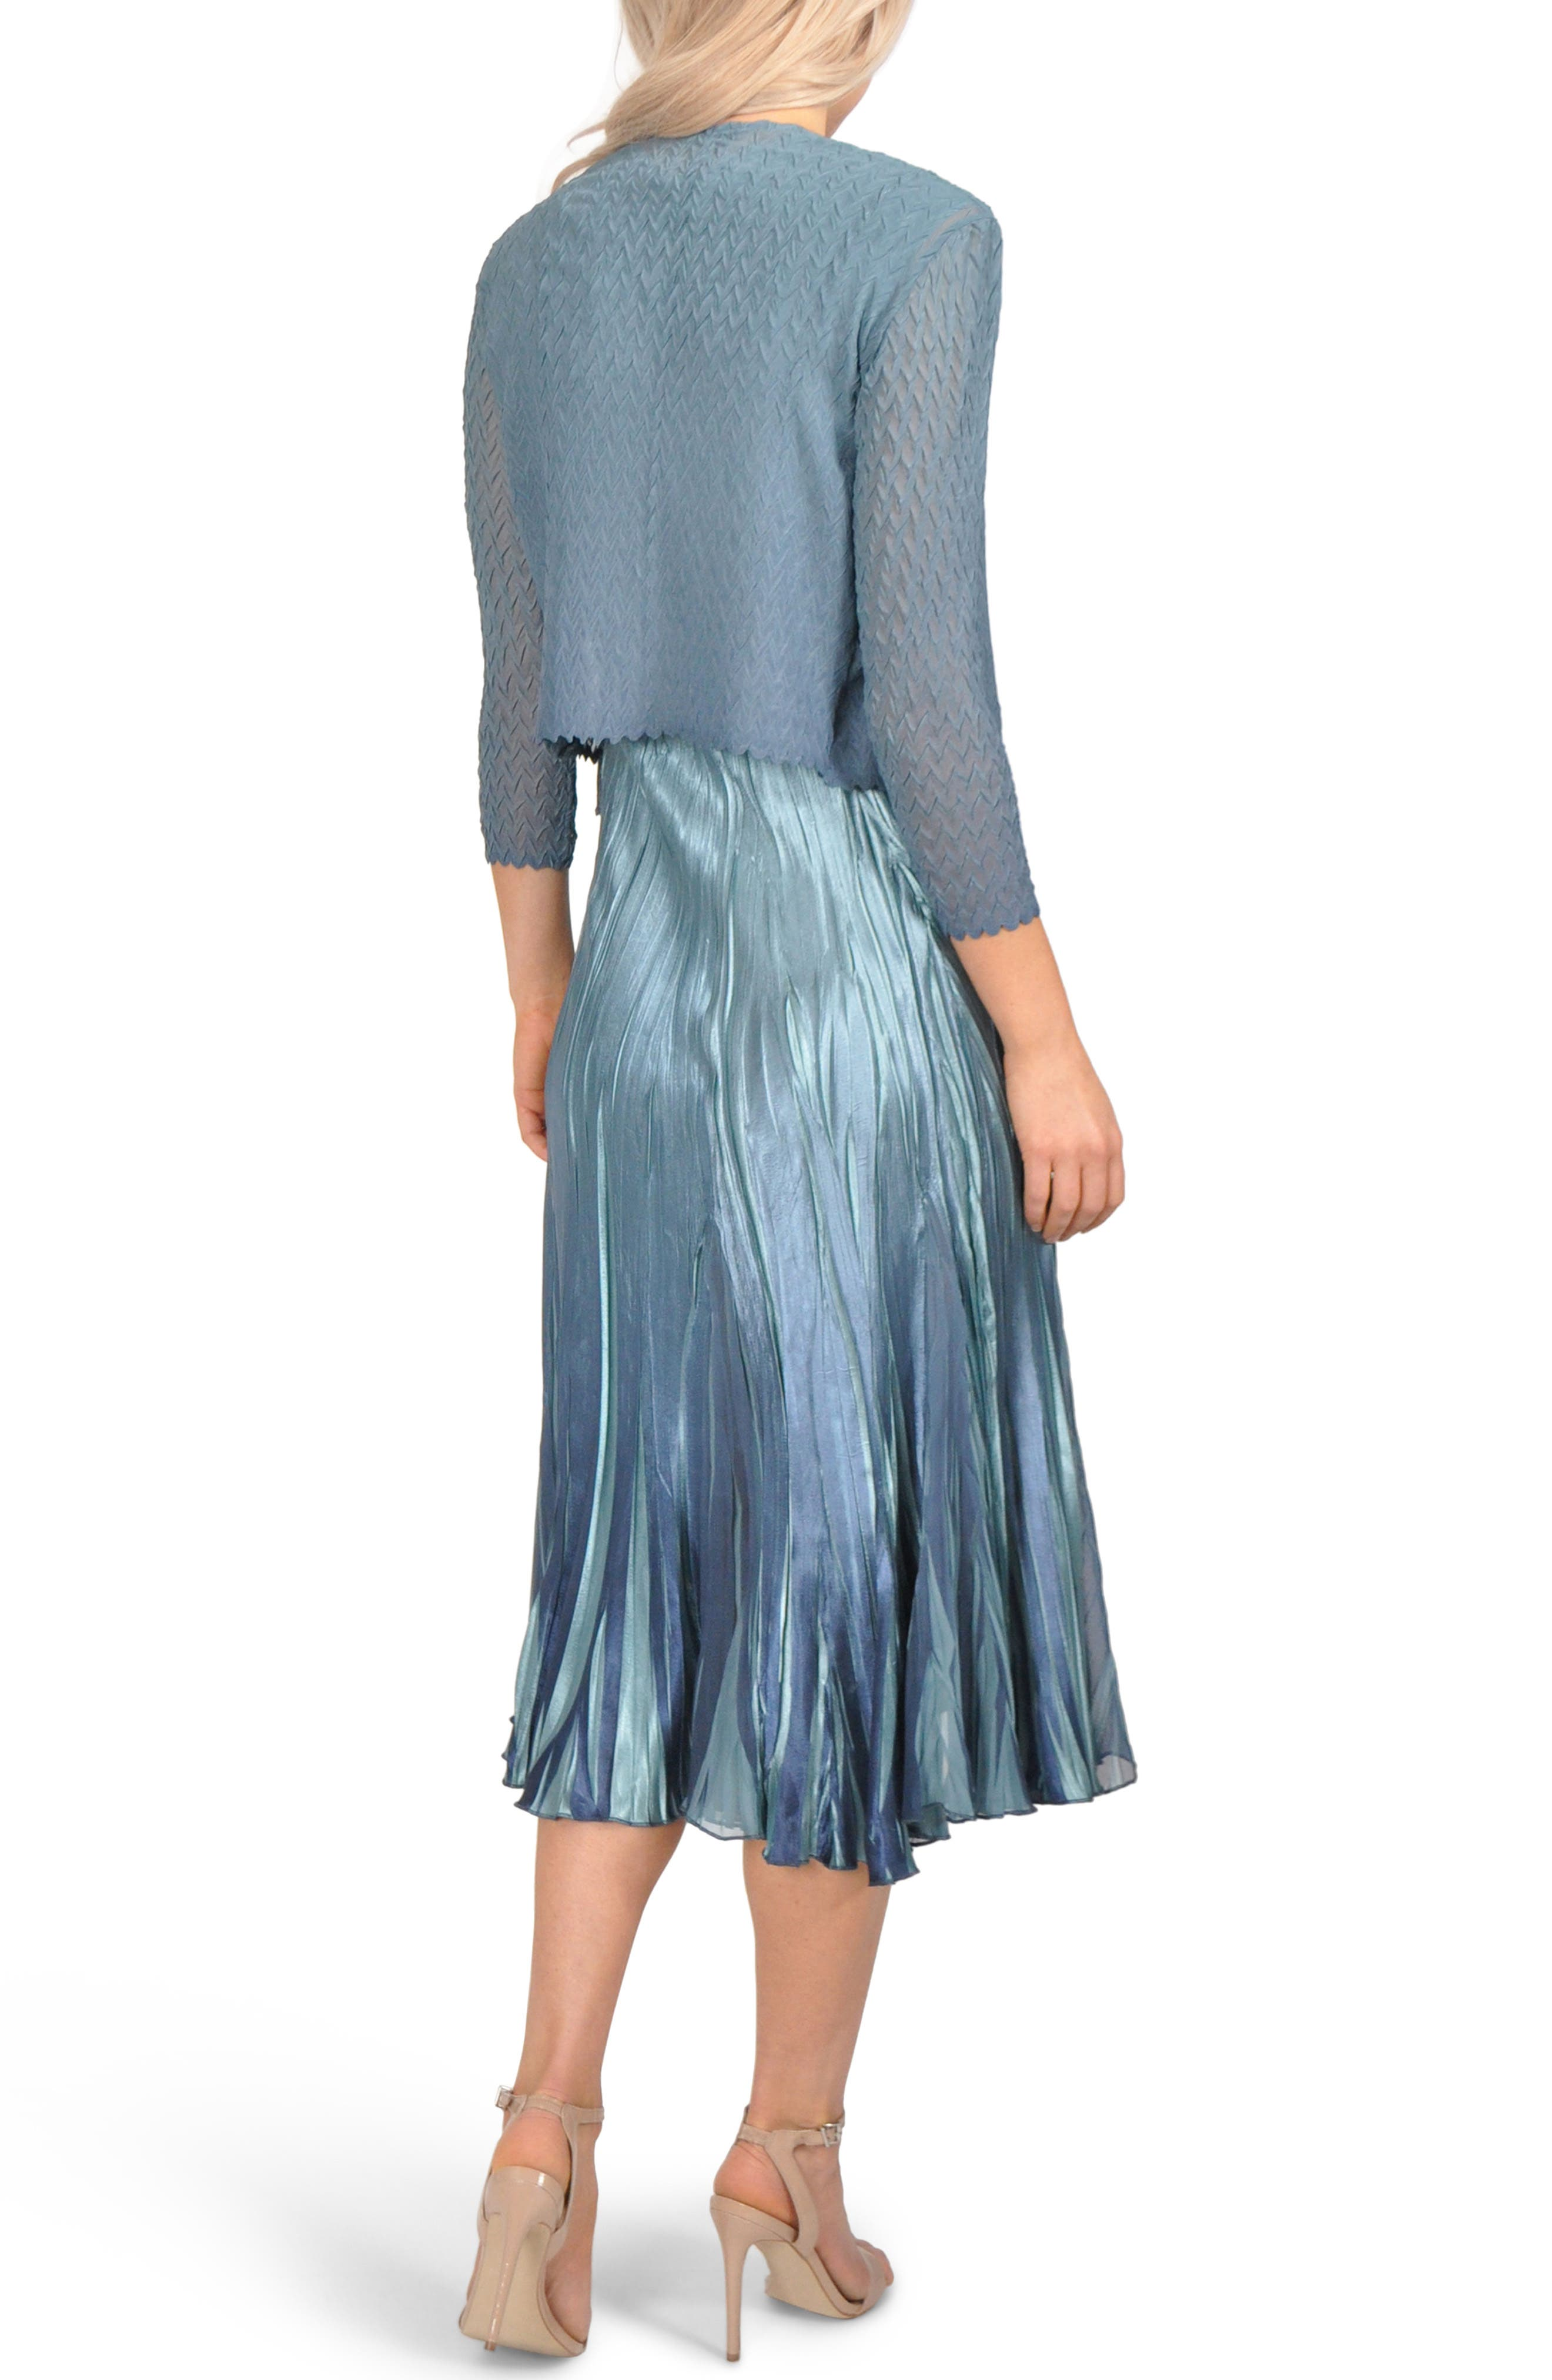 Embellished Pleat Mixed Media Dress with Jacket,                             Alternate thumbnail 2, color,                             SILVER BLUE OMBRE